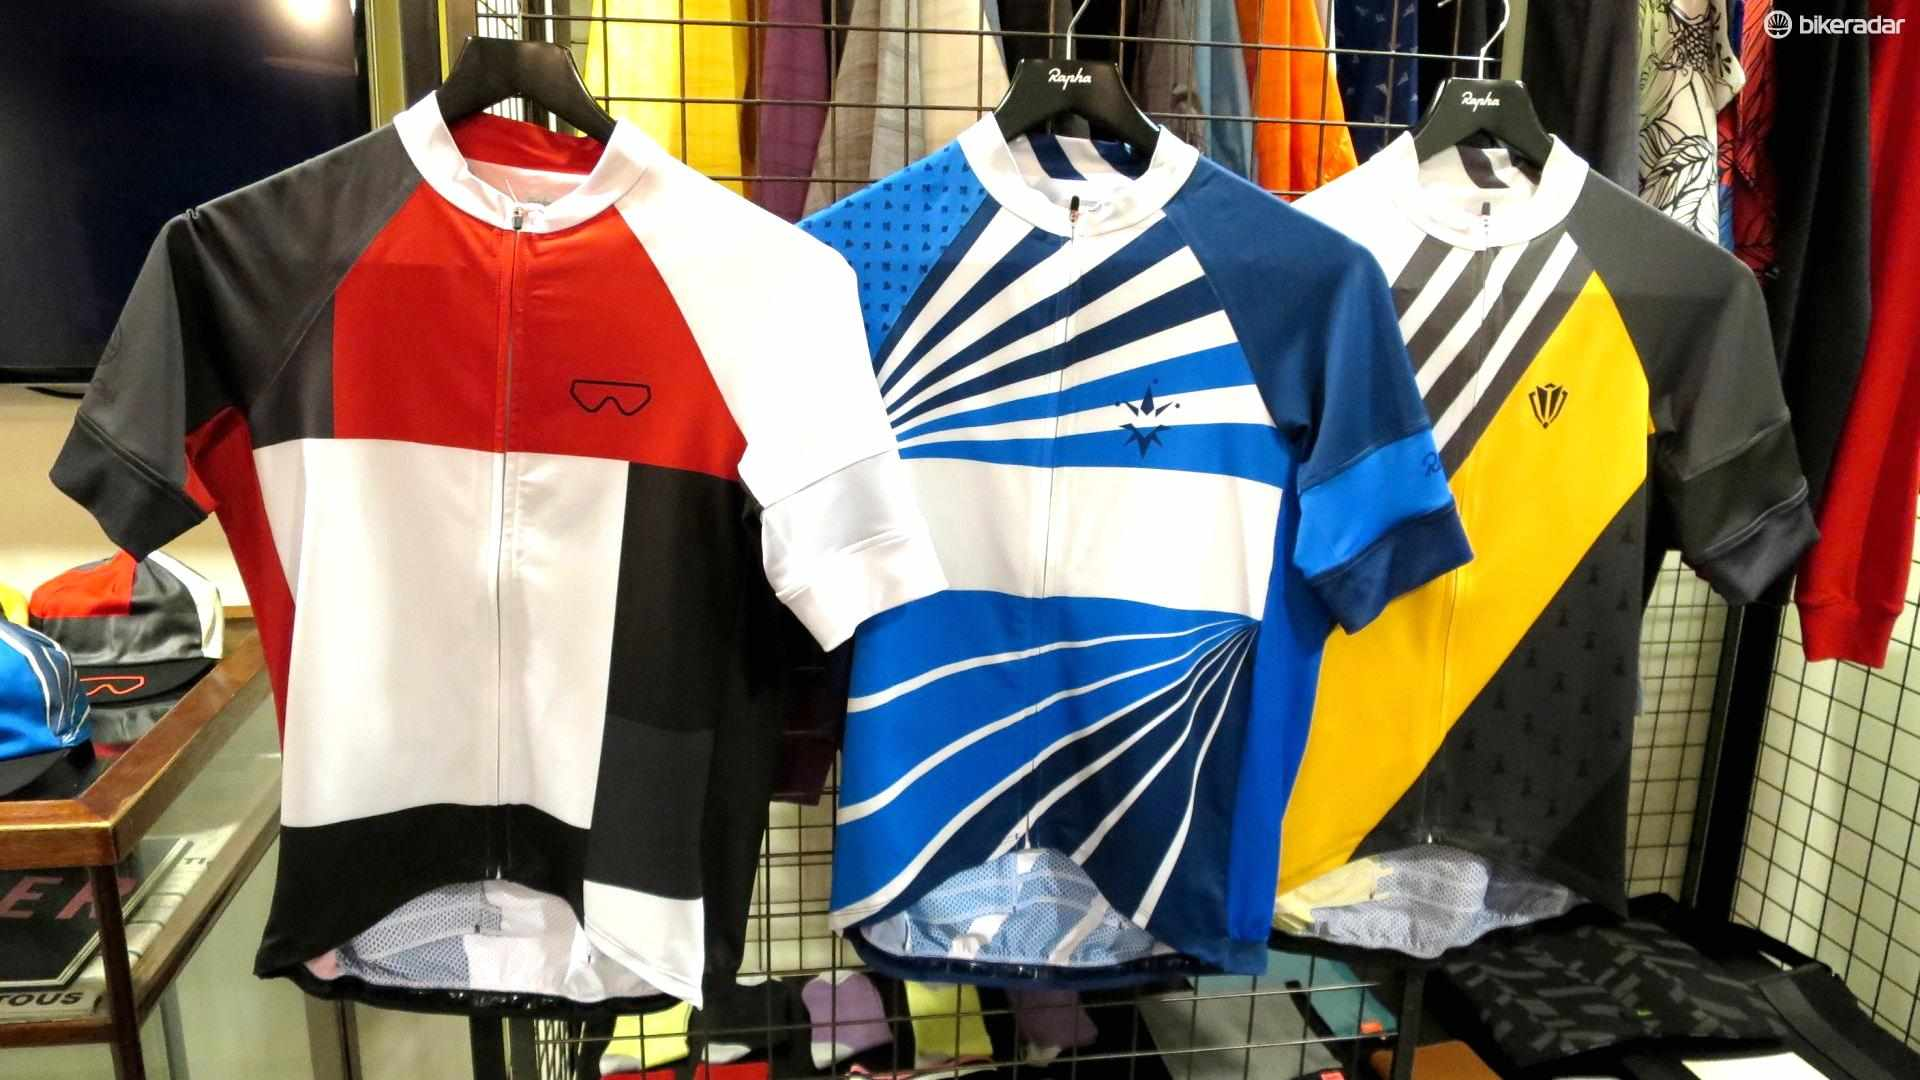 Rapha's new trade team jerseys take inspiration from the La Vie Claire, ANC and Renault teams